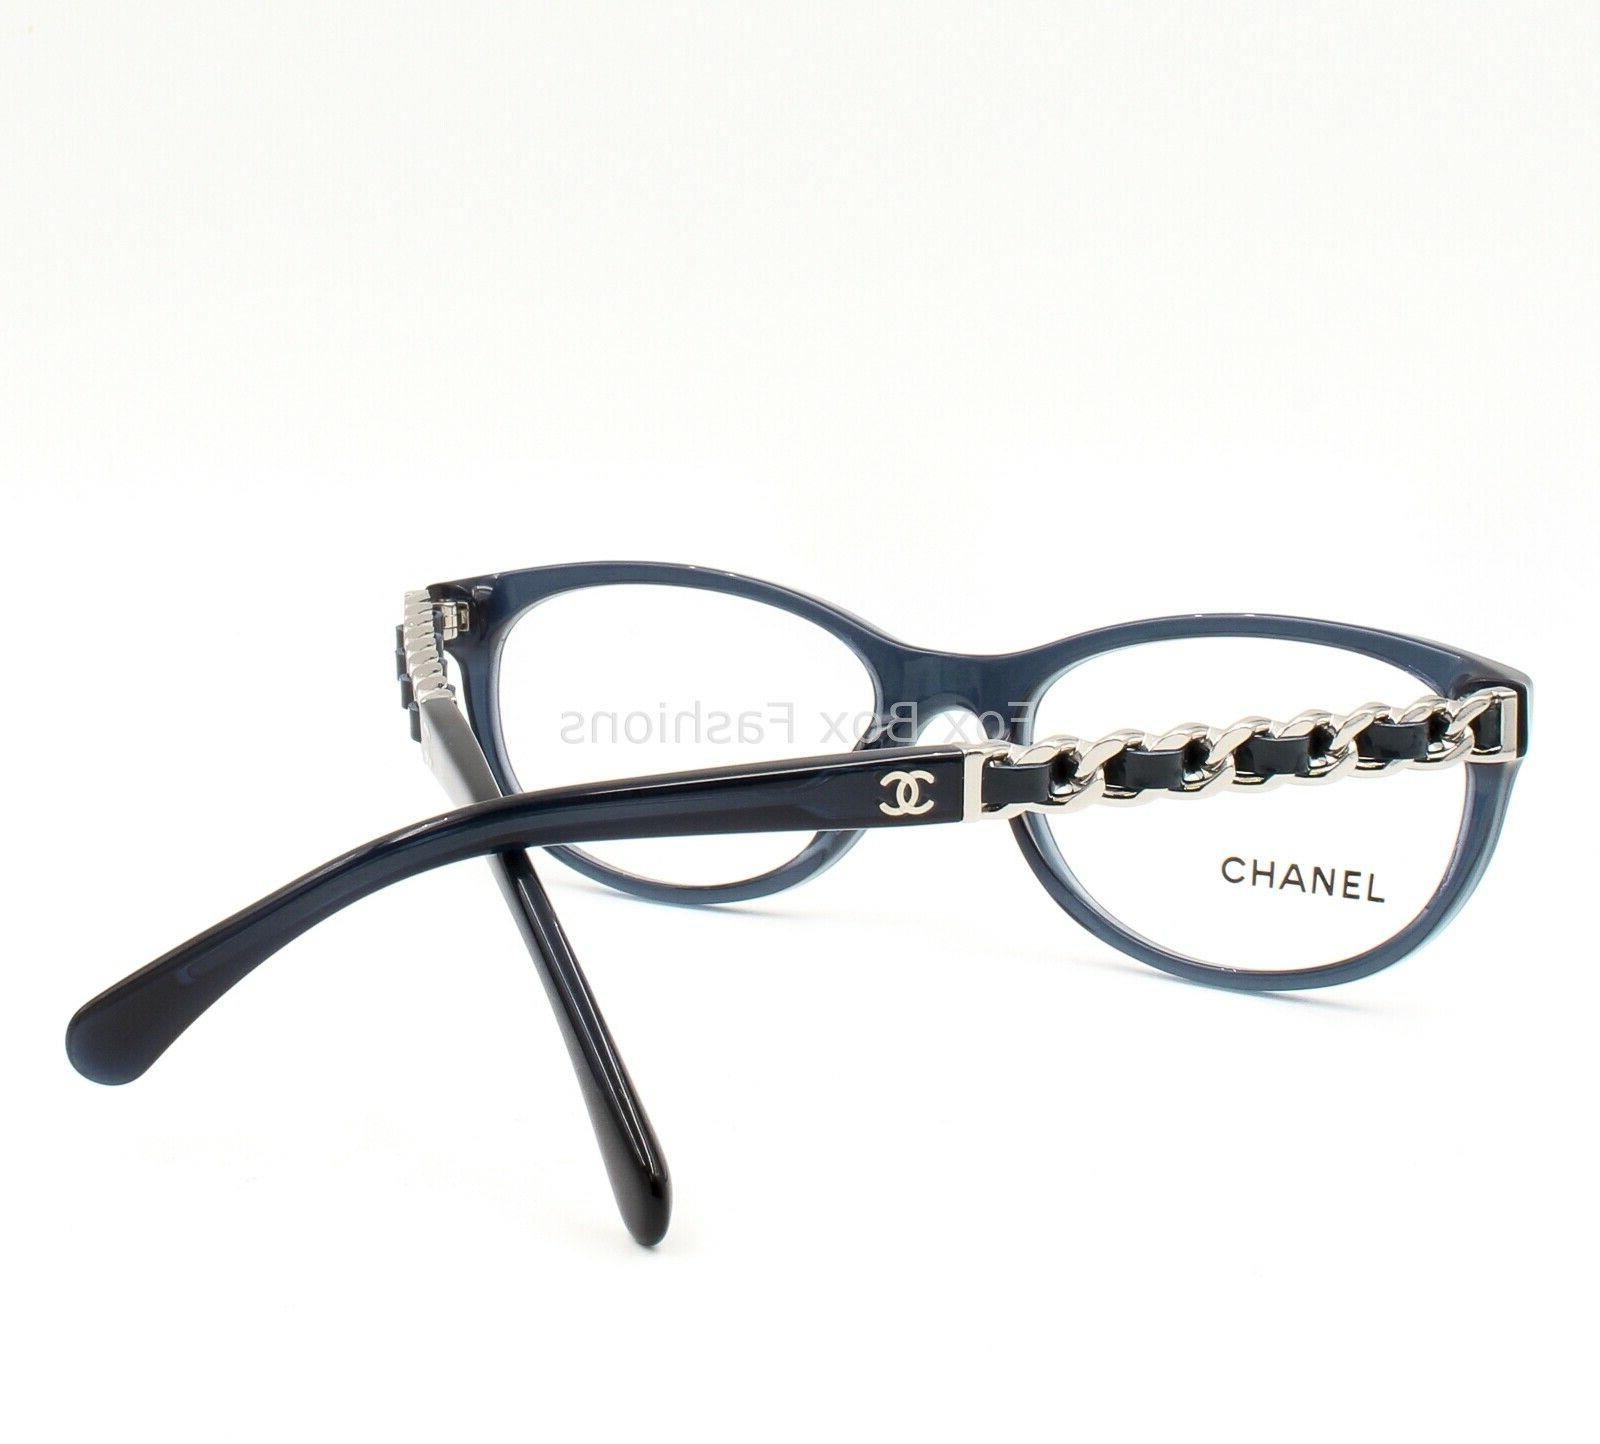 CHANEL 1390 Frame Glasses & Silver Logo